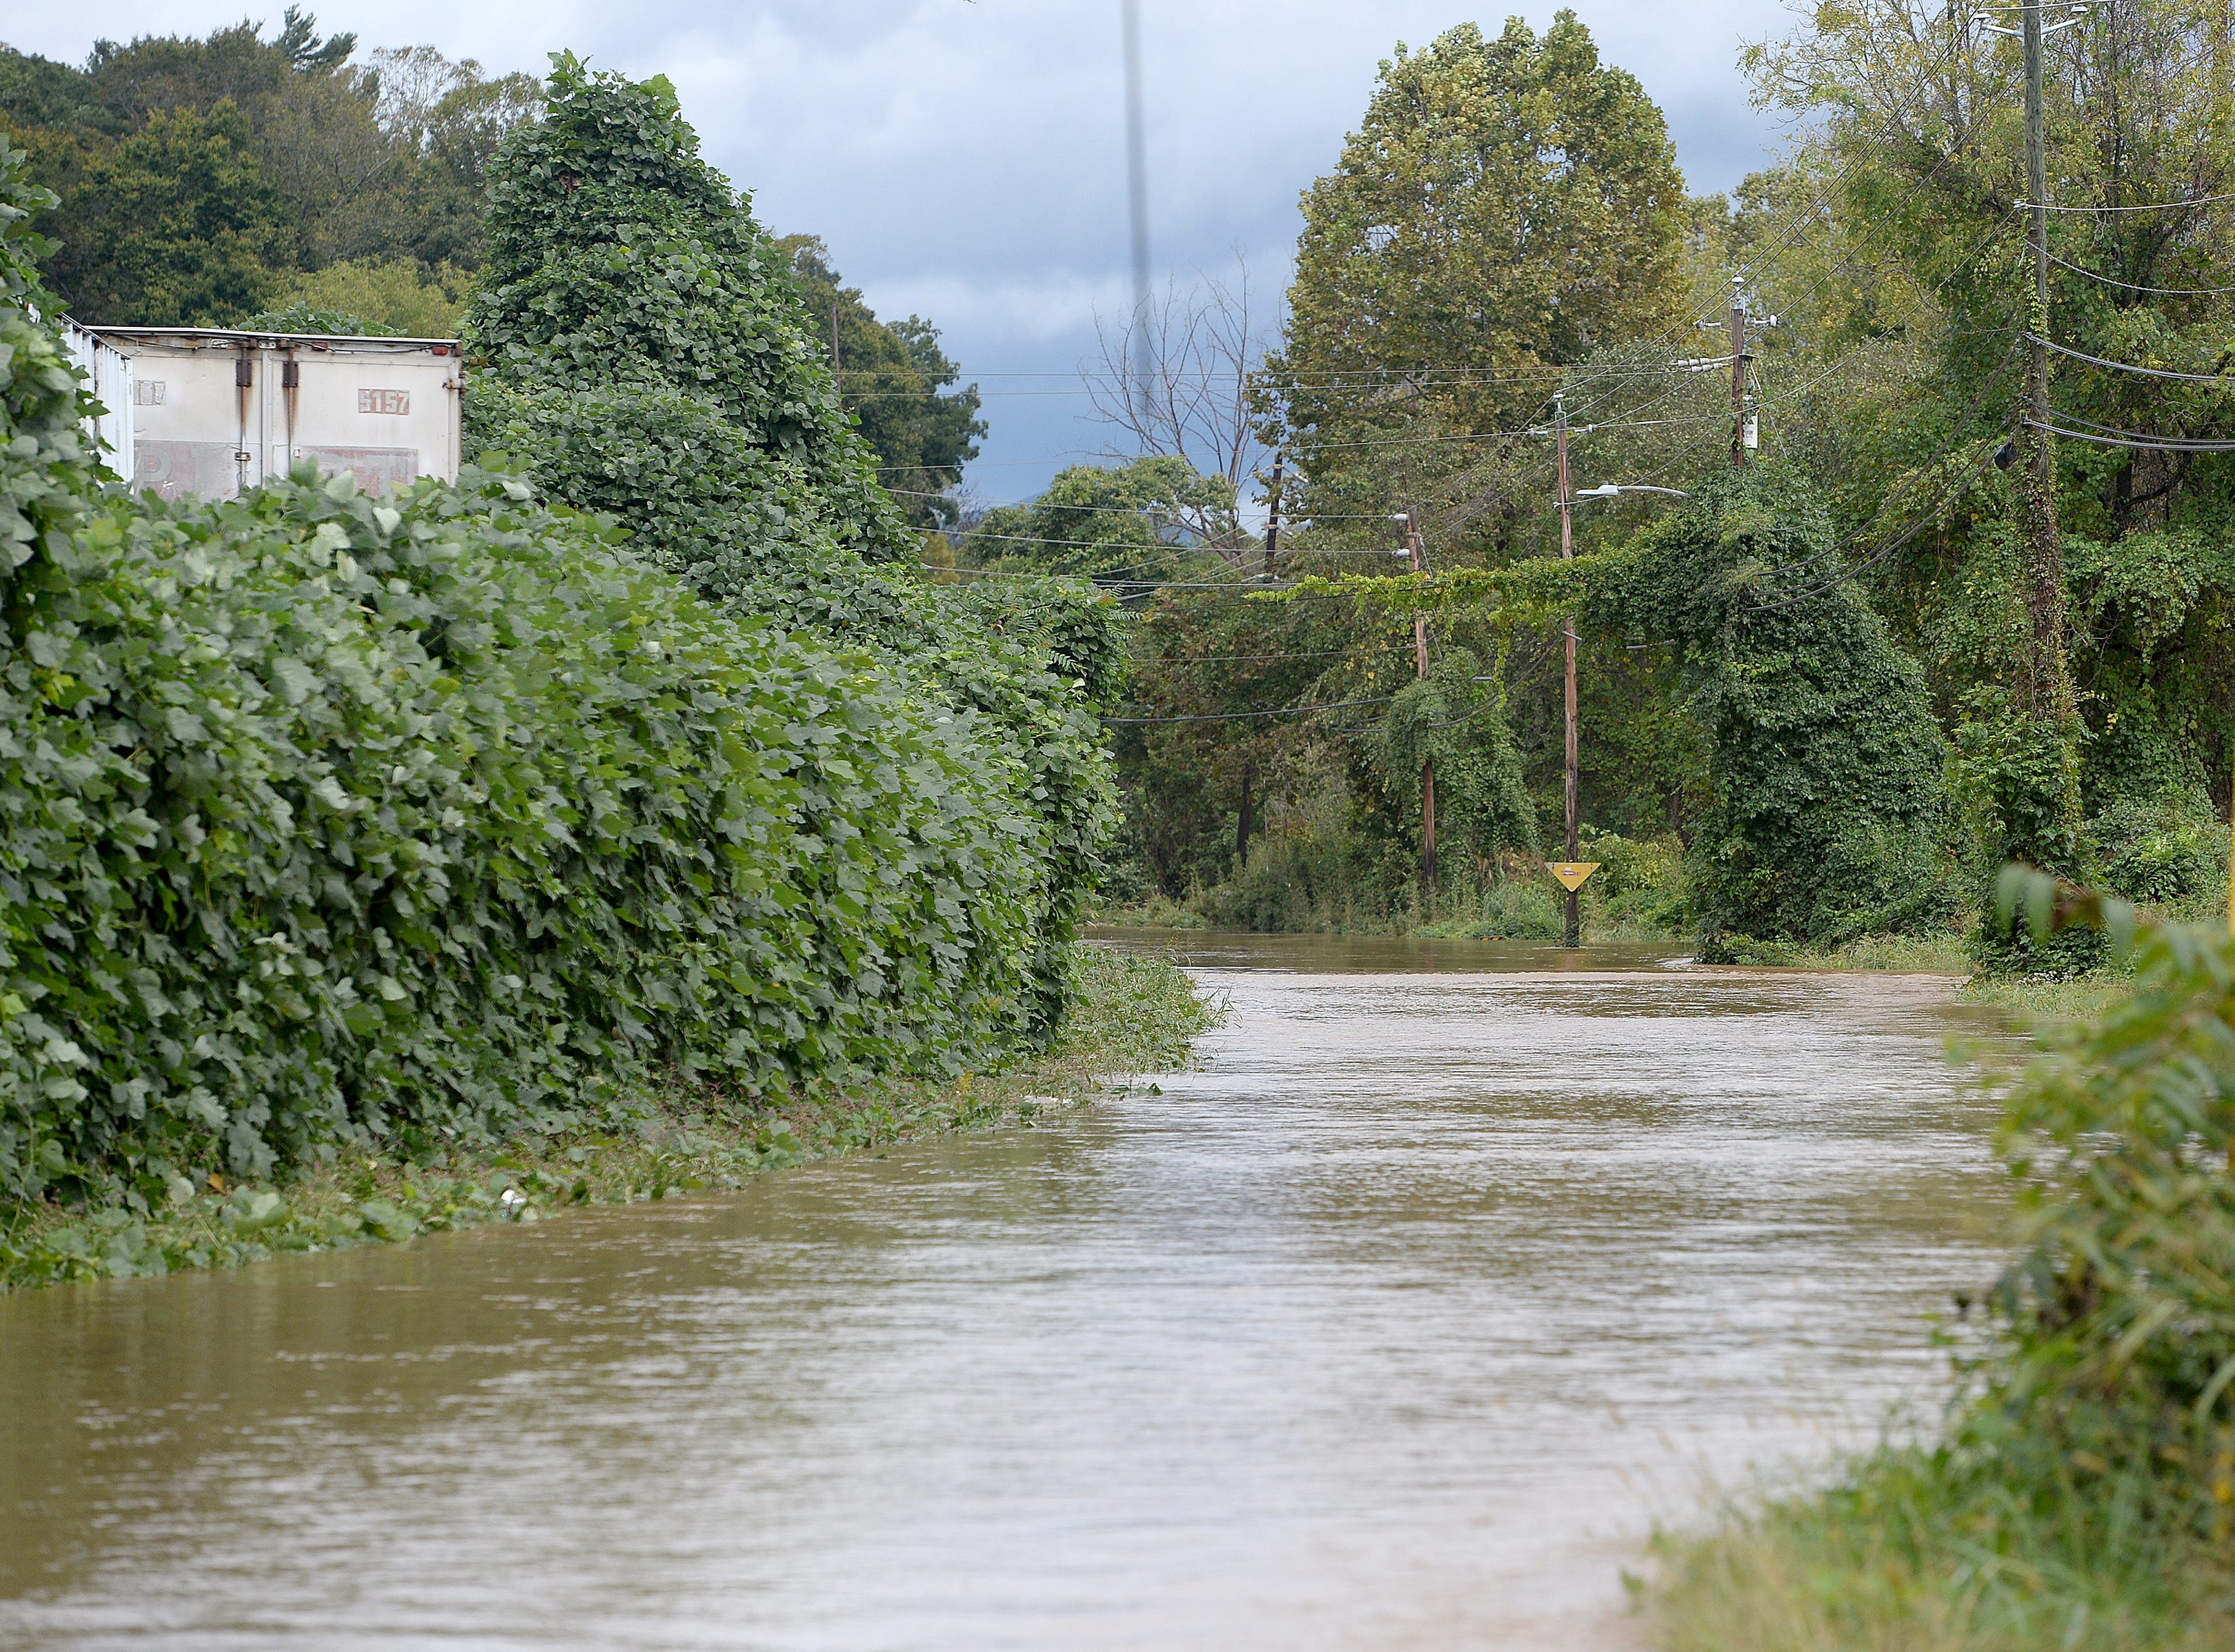 A section of Swannanoa River Road was closed due to flooding of the Swannanoa River as a result of rains from Hurricane Michael on Oct. 11, 2018.